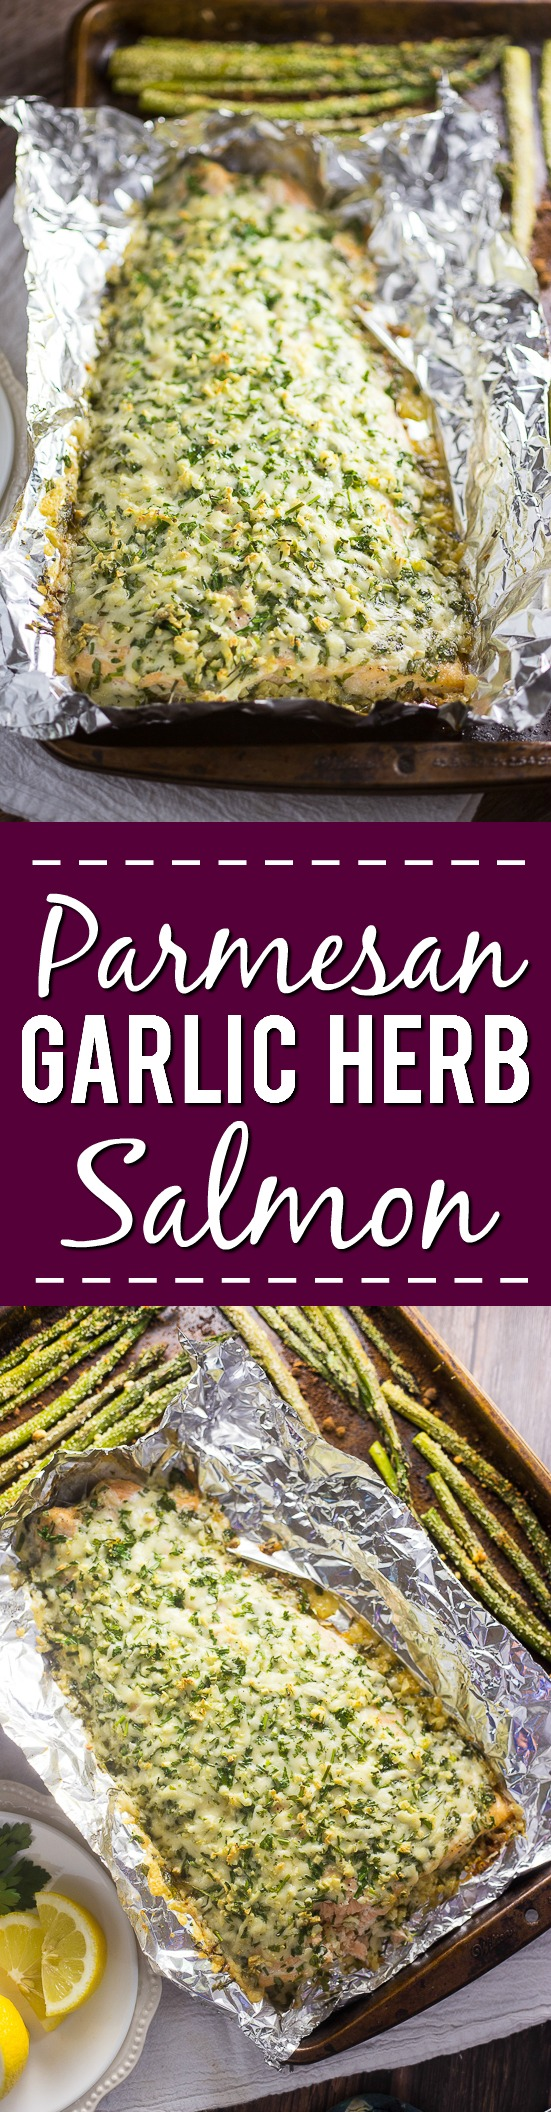 Parmesan Garlic Herb Salmon Recipe - Quick and easy family dinner recipe, but also cheesy and zesty Parmesan Garlic Herb Salmon recipe uses to simple ingredients to make a delicious flavorful meal in just 30 minutes! Perfect easy fish dinner!